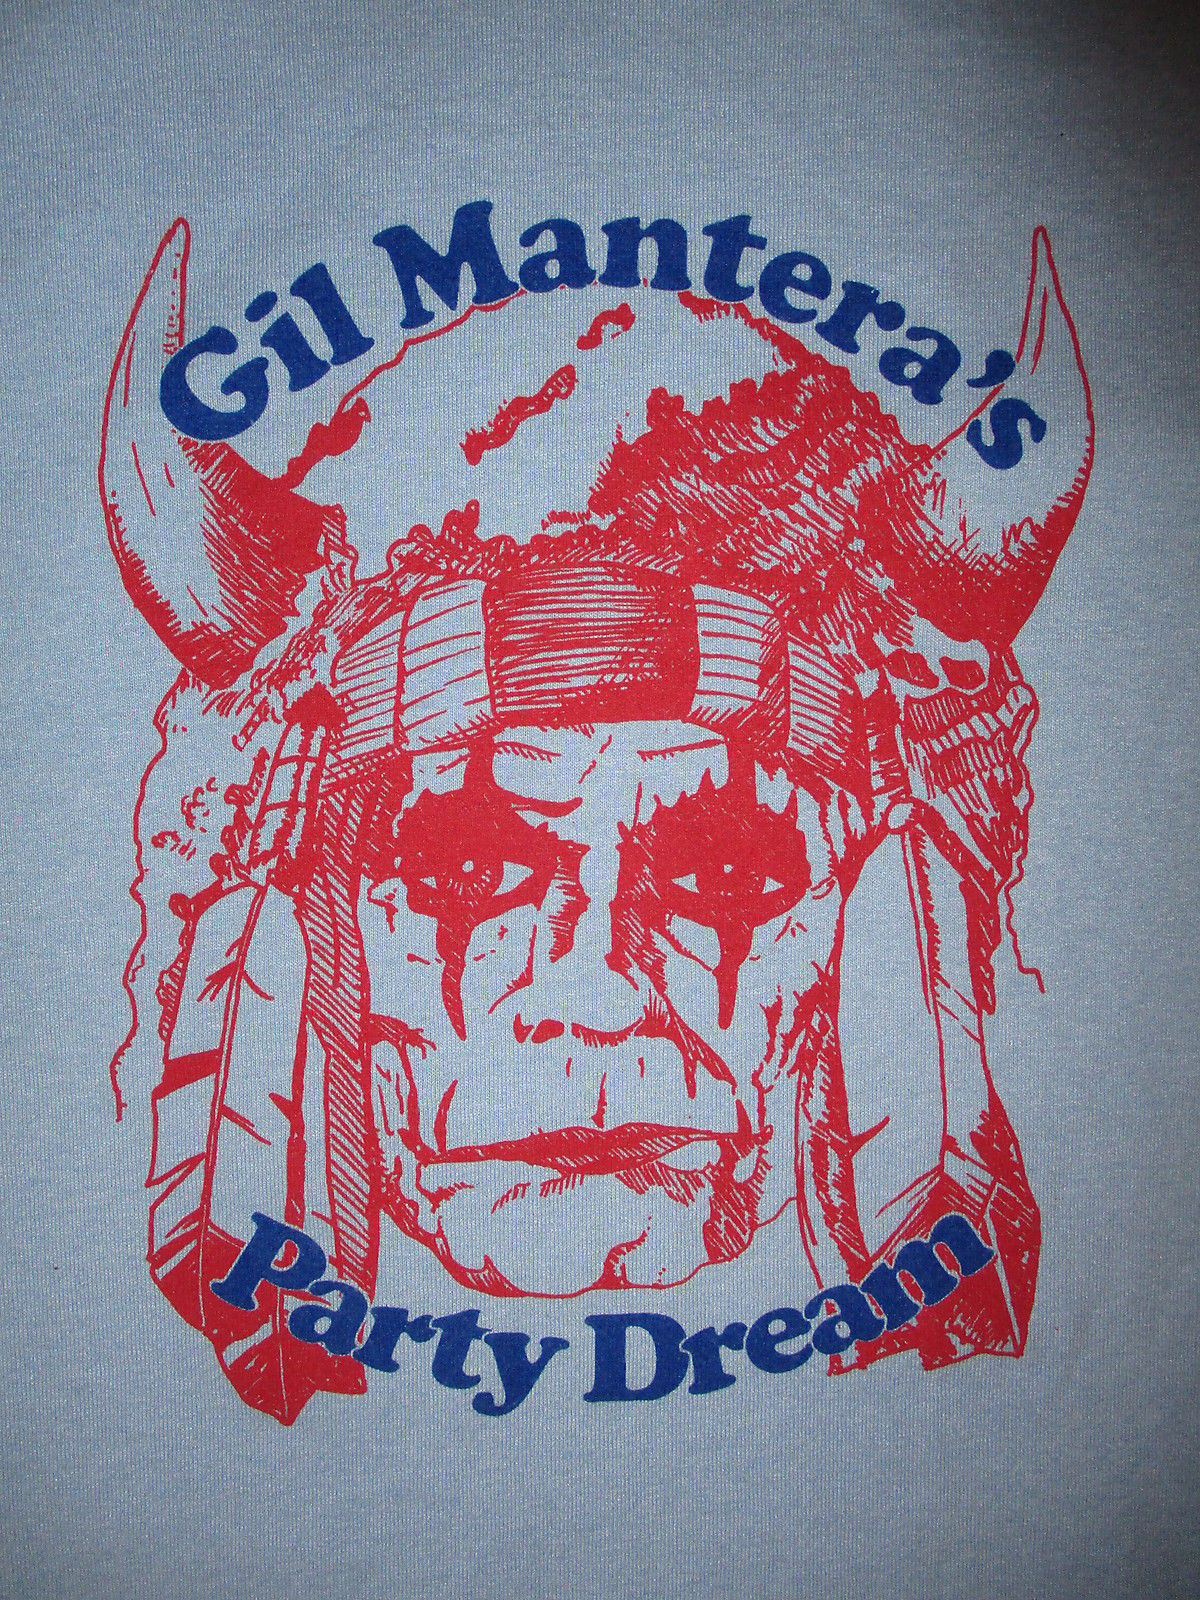 GIL MANTERAS PARTY DREAM CONCERT T SHIRT Youngstown Ohio SynthPop Dance Band LG